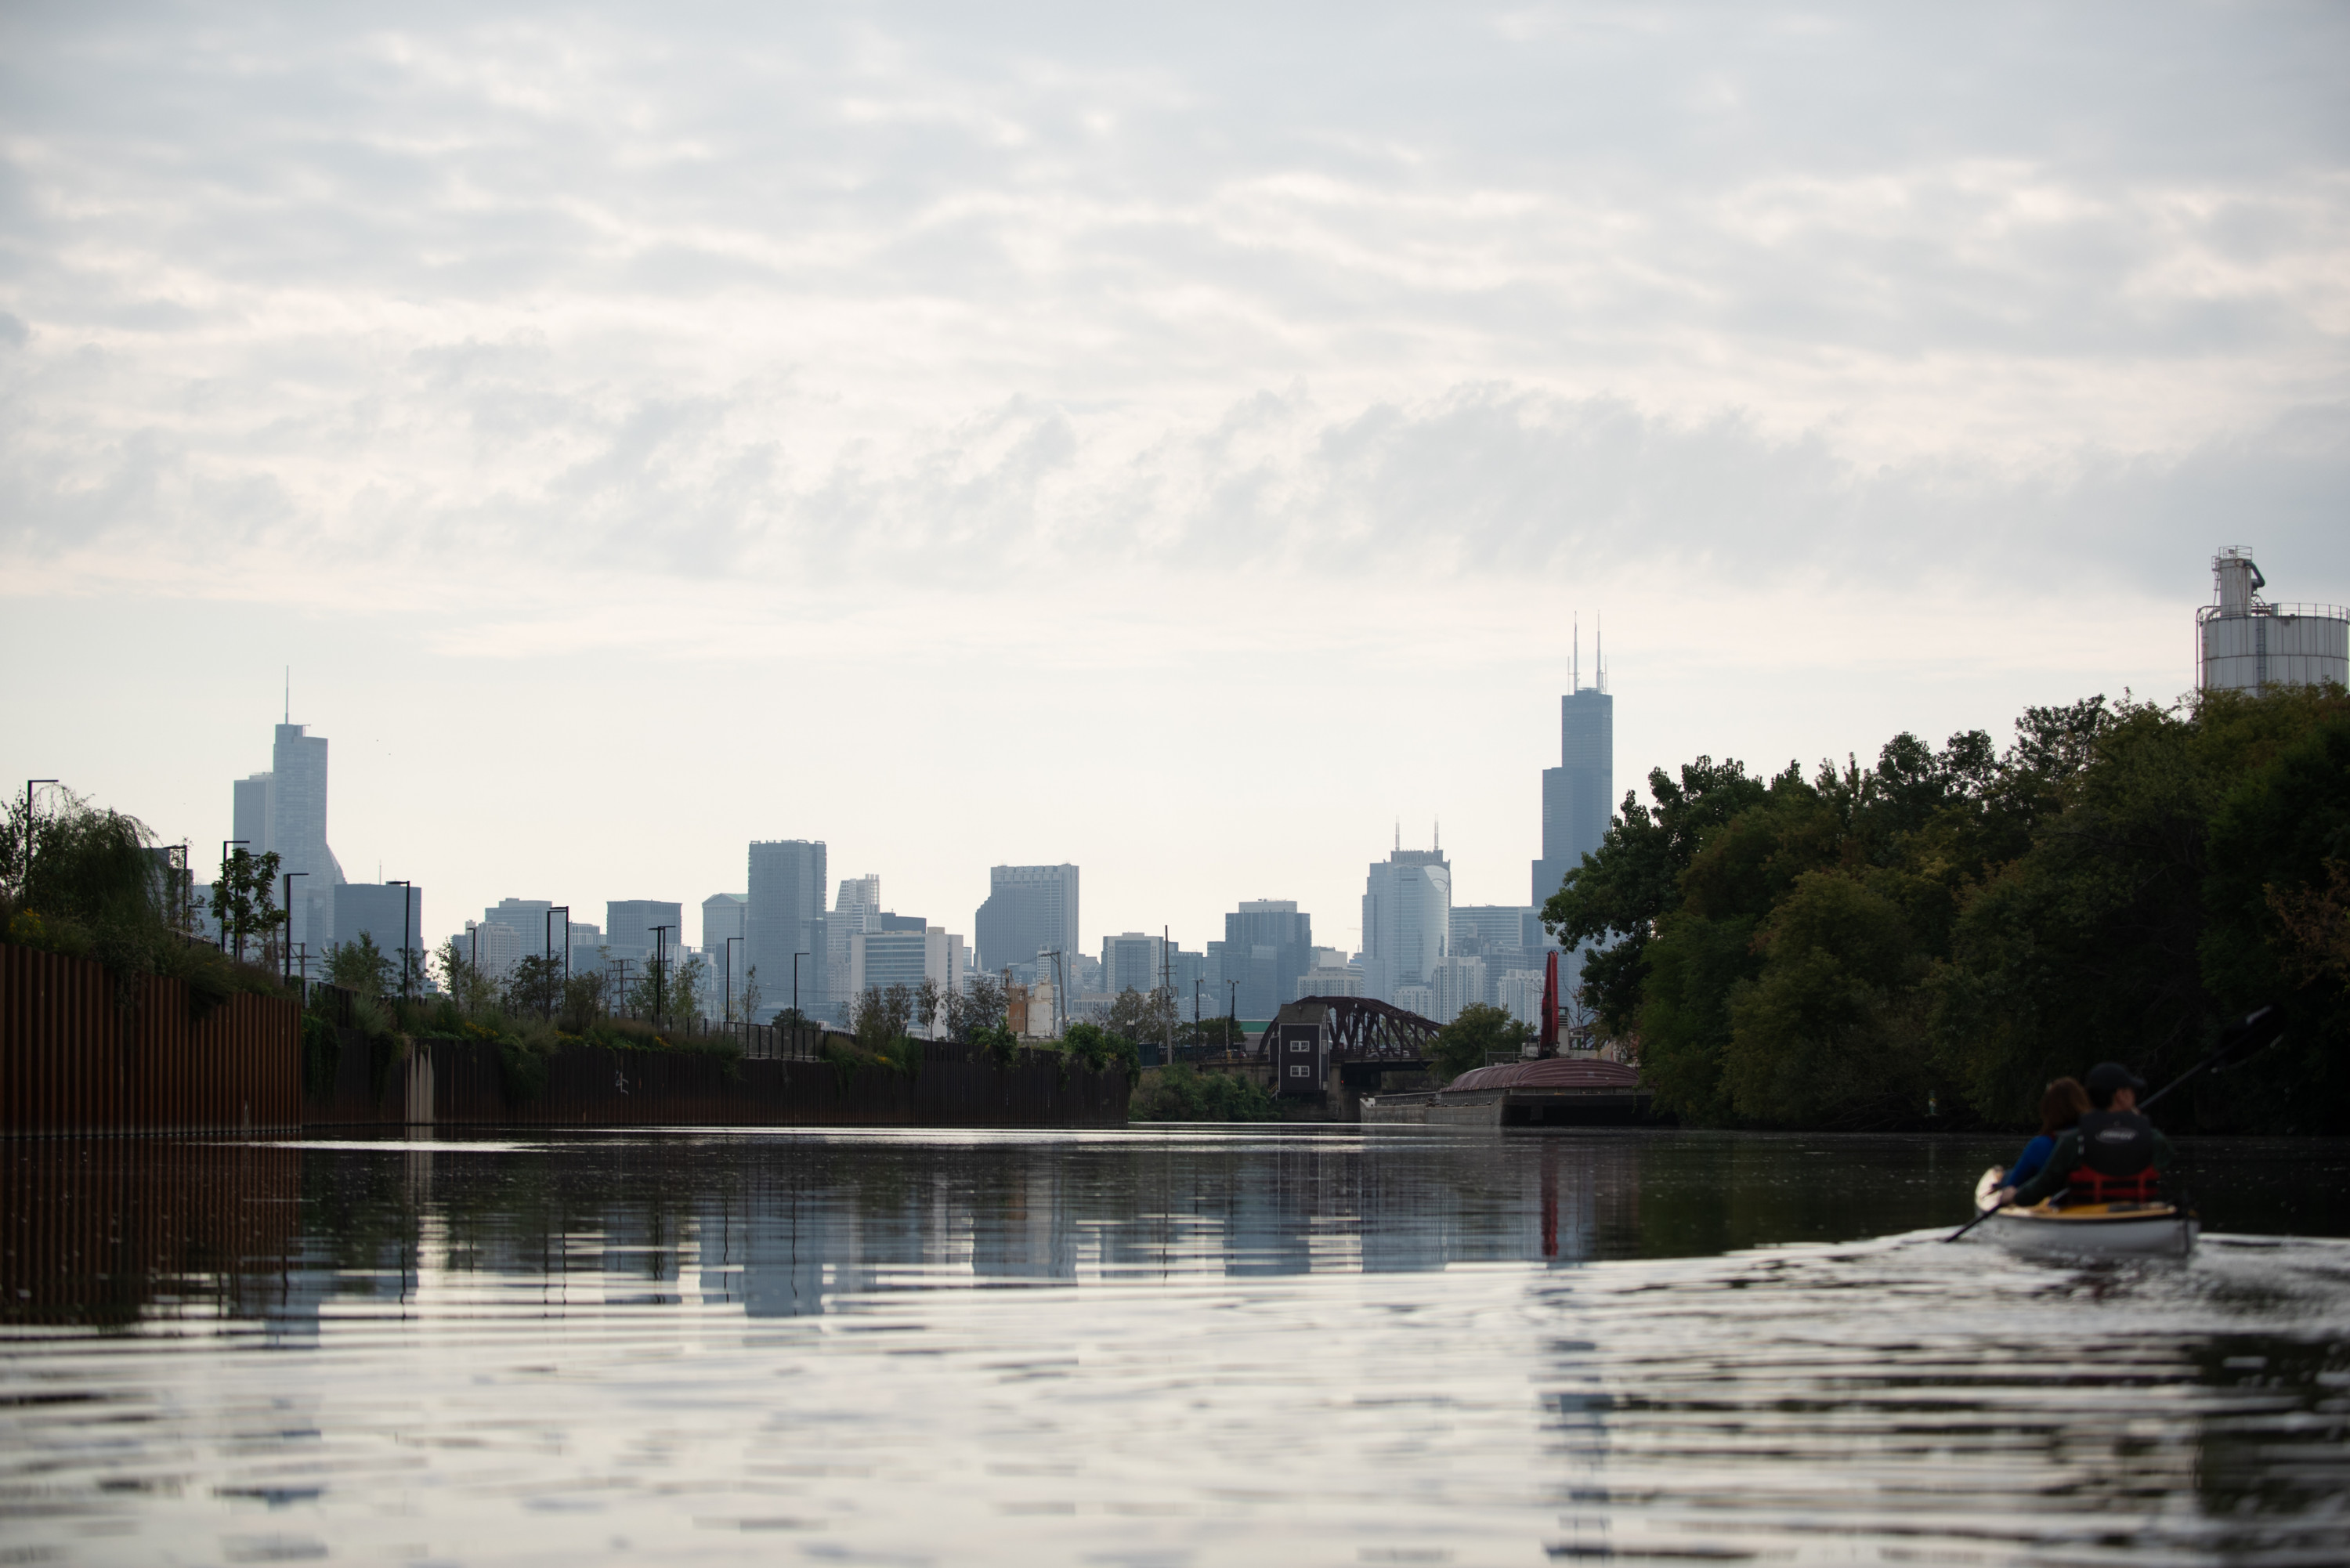 The Chicago River is experiencing an environmental renaissance — thanks to some friends and clean-up efforts. (Photos by Colin Boyle/Northwestern University)